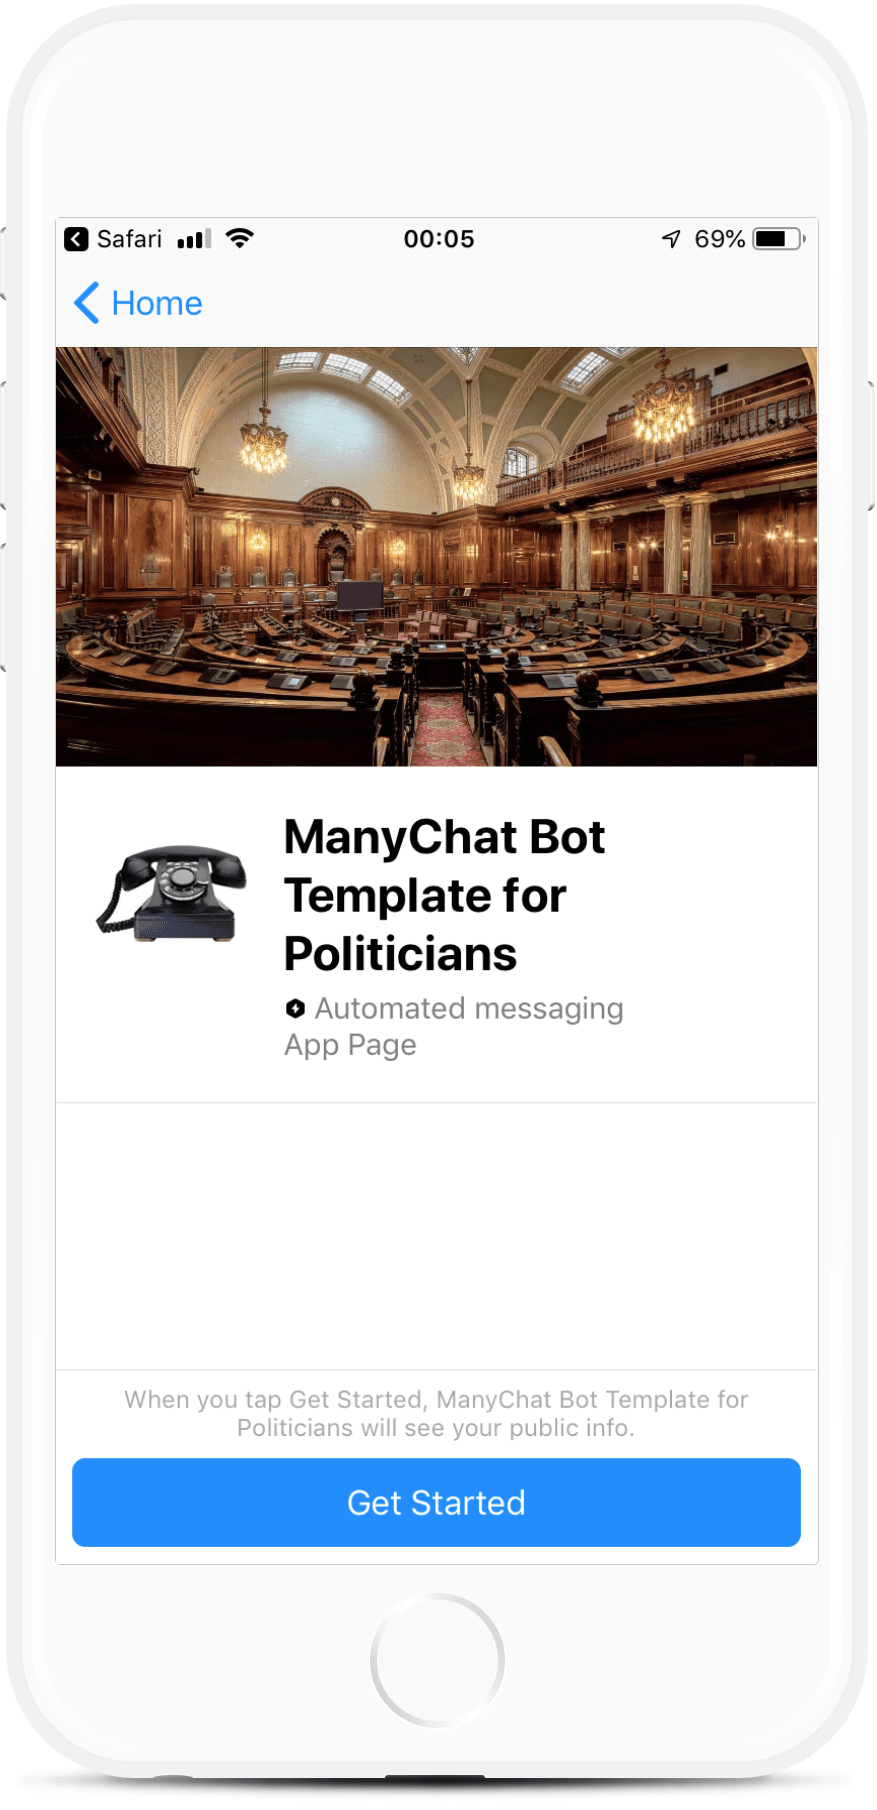 ManyChat Bot Template for Government Agencies and Politicians bot screenshot